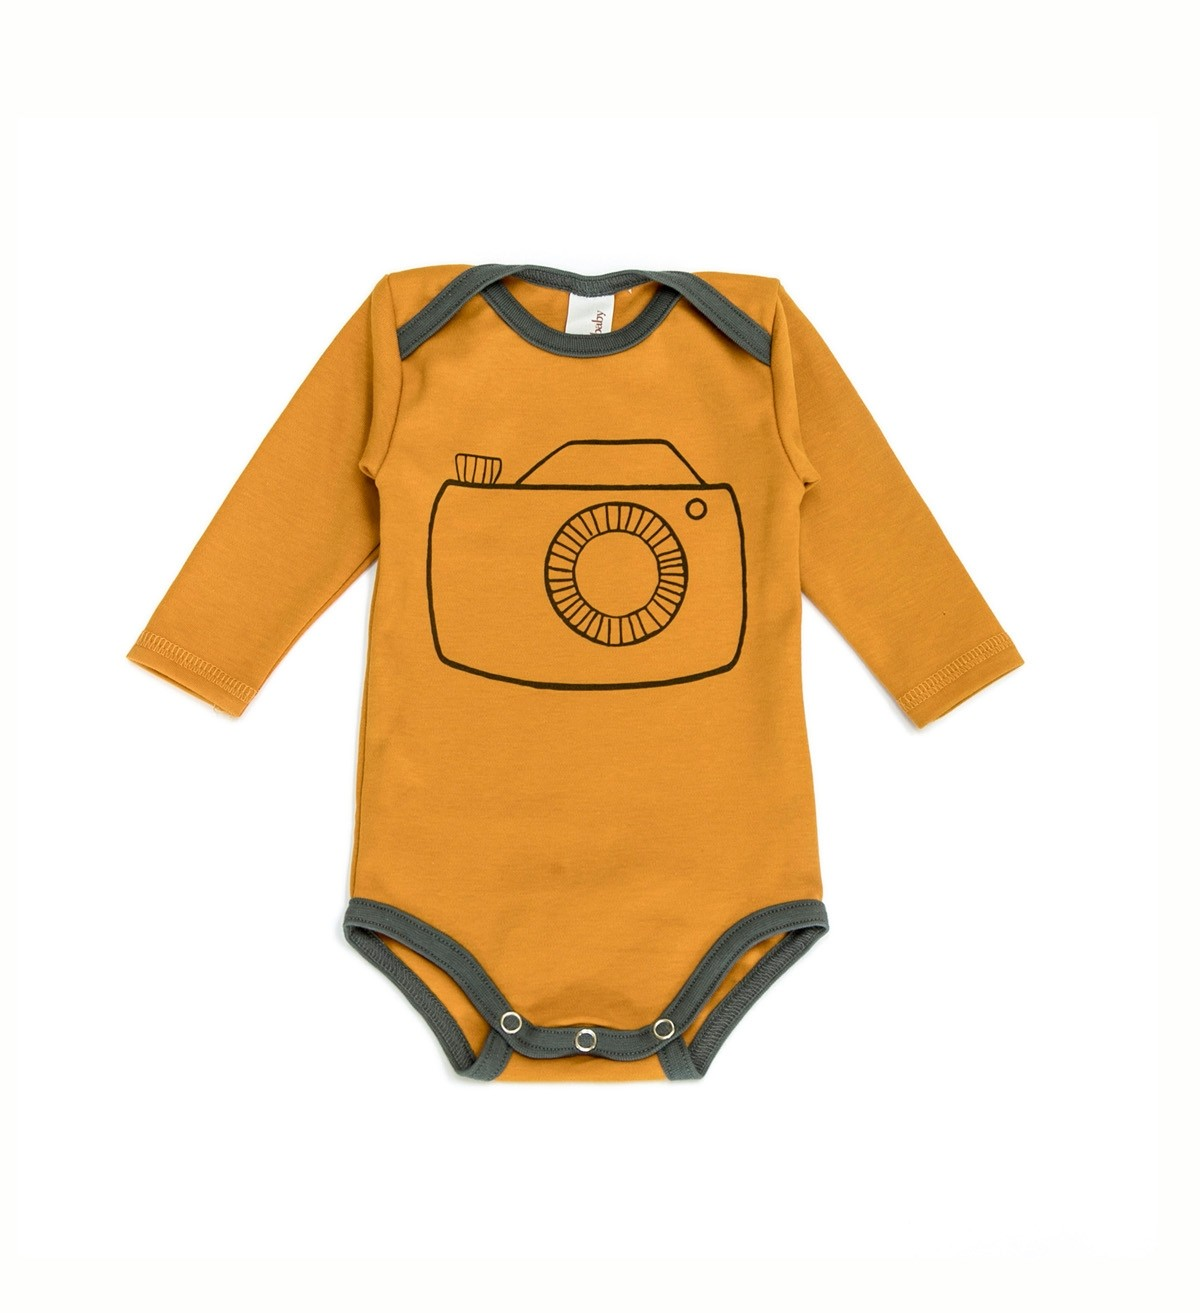 Baobaby body DR – Sunny Gold Photo